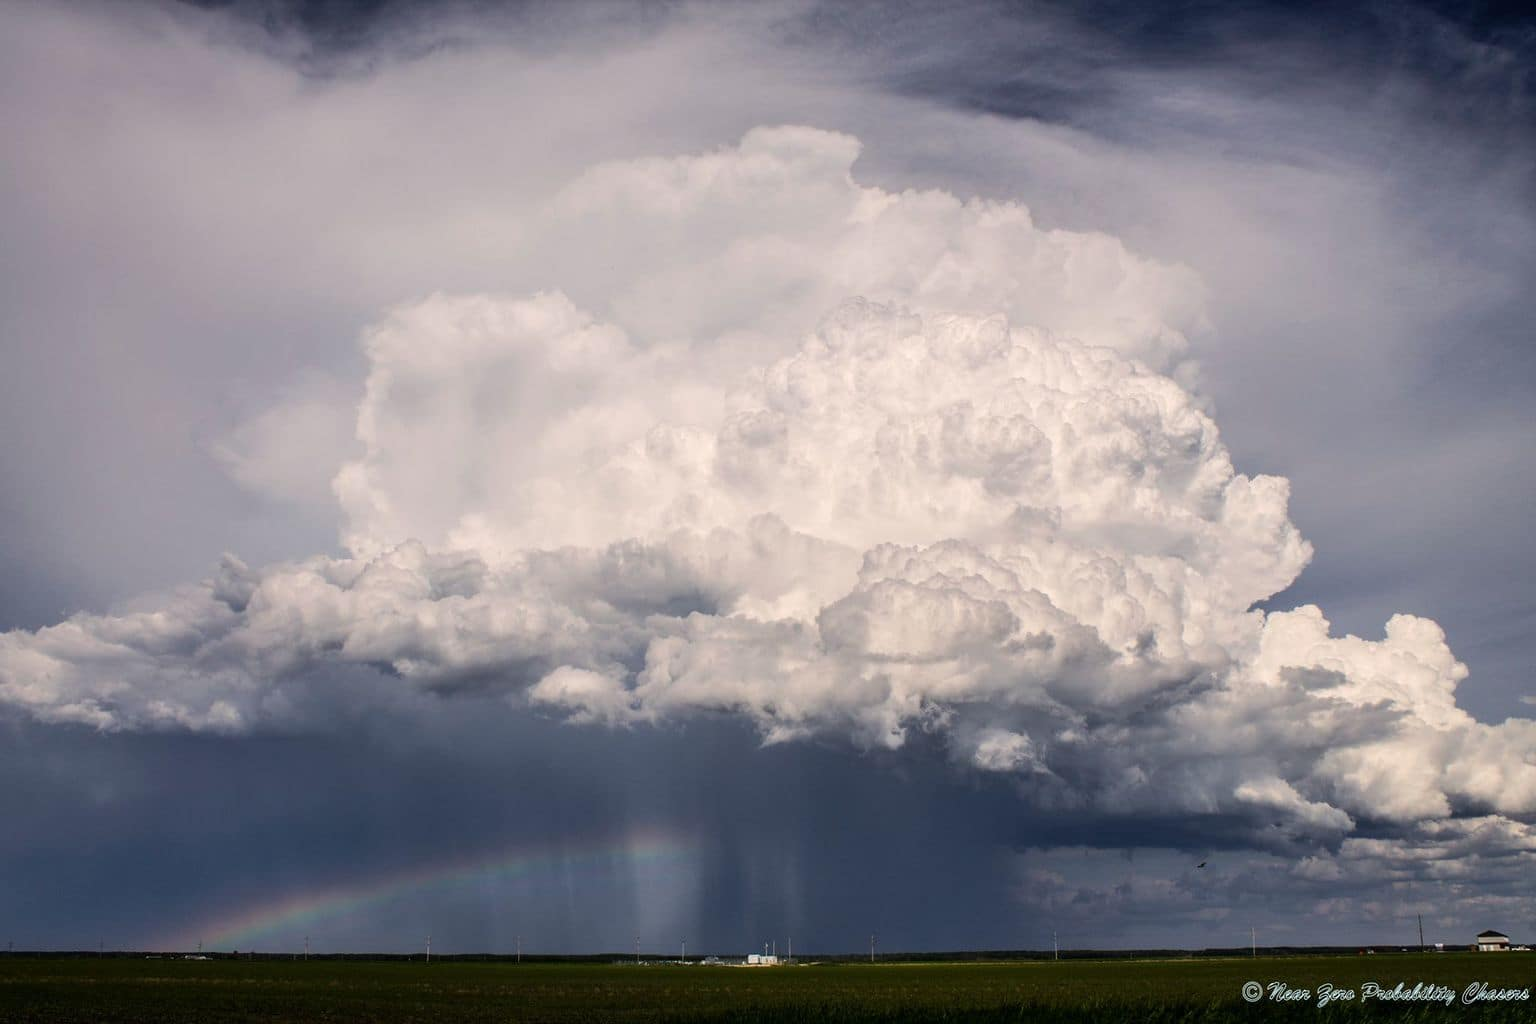 Pic of the day, just a storm & rainbow passing through